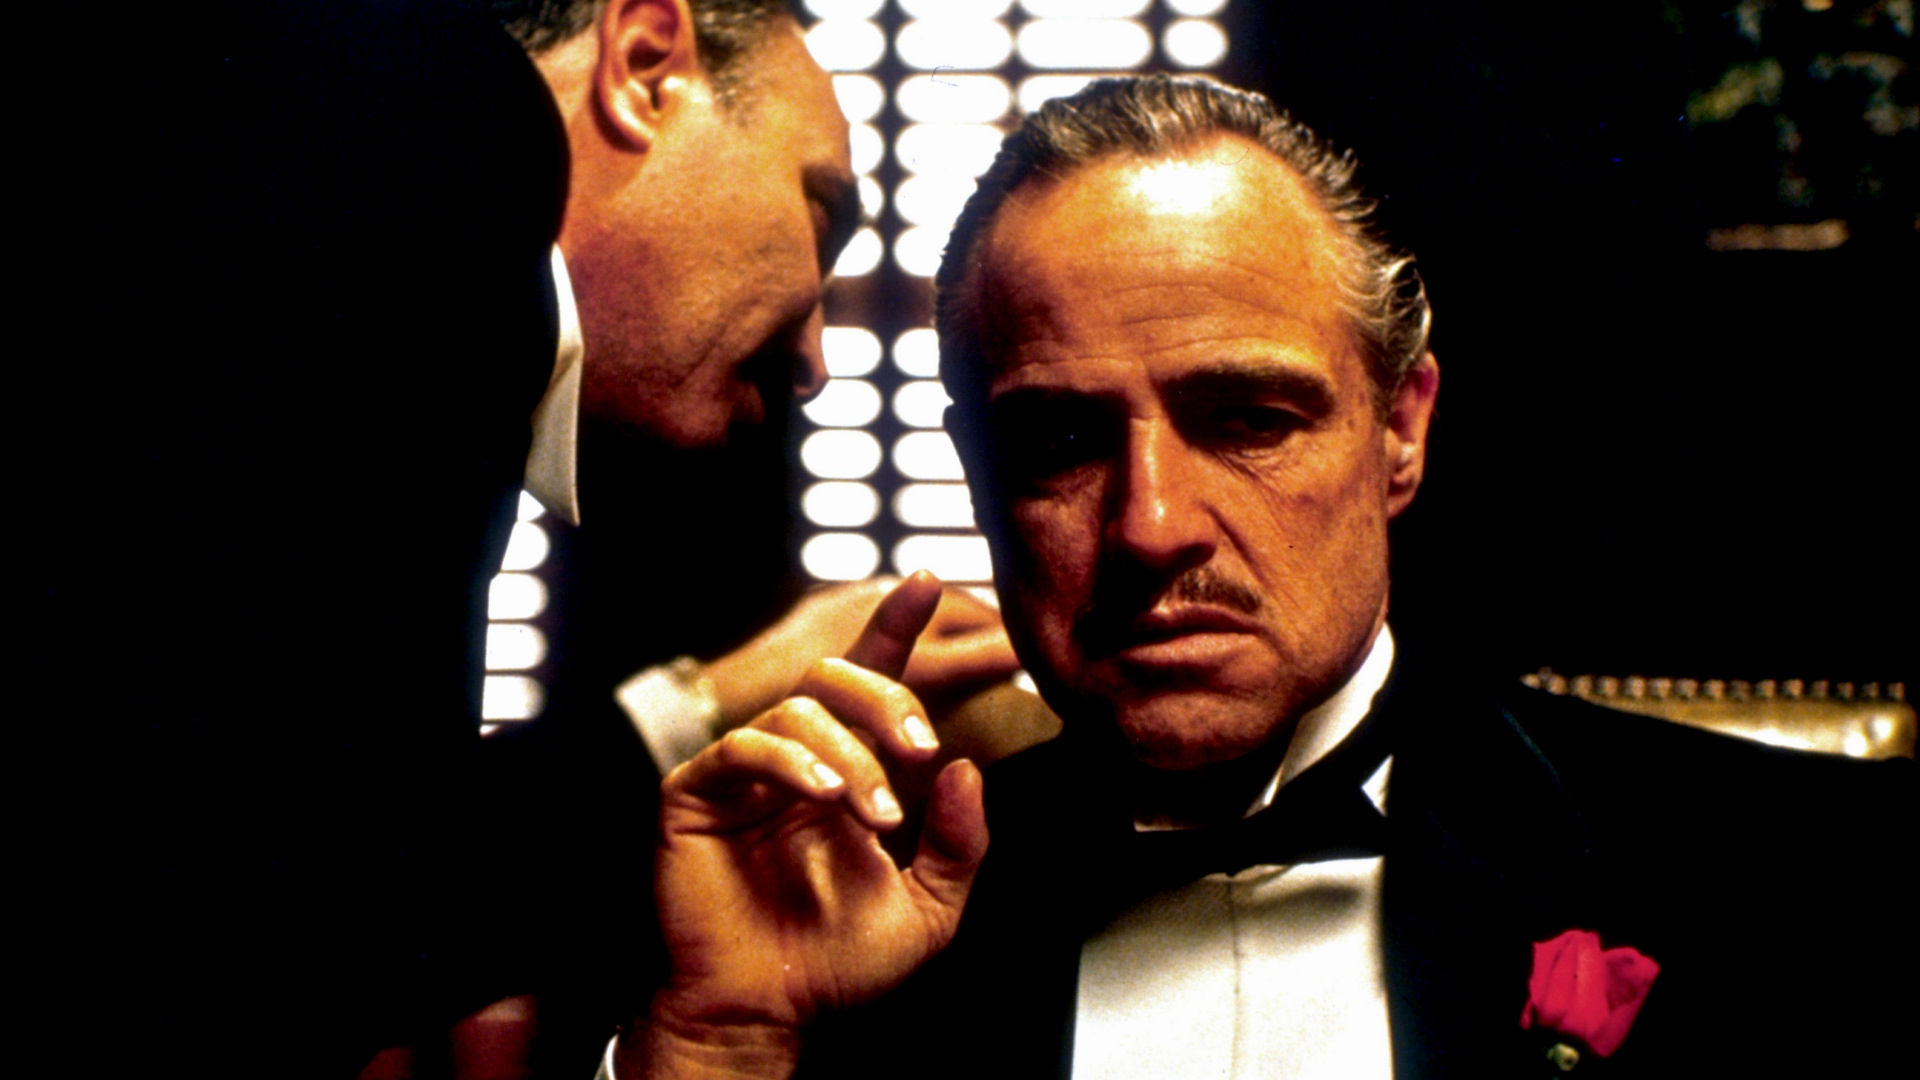 http://casnocha.com/images/2013/05/the-godfather-1.jpg